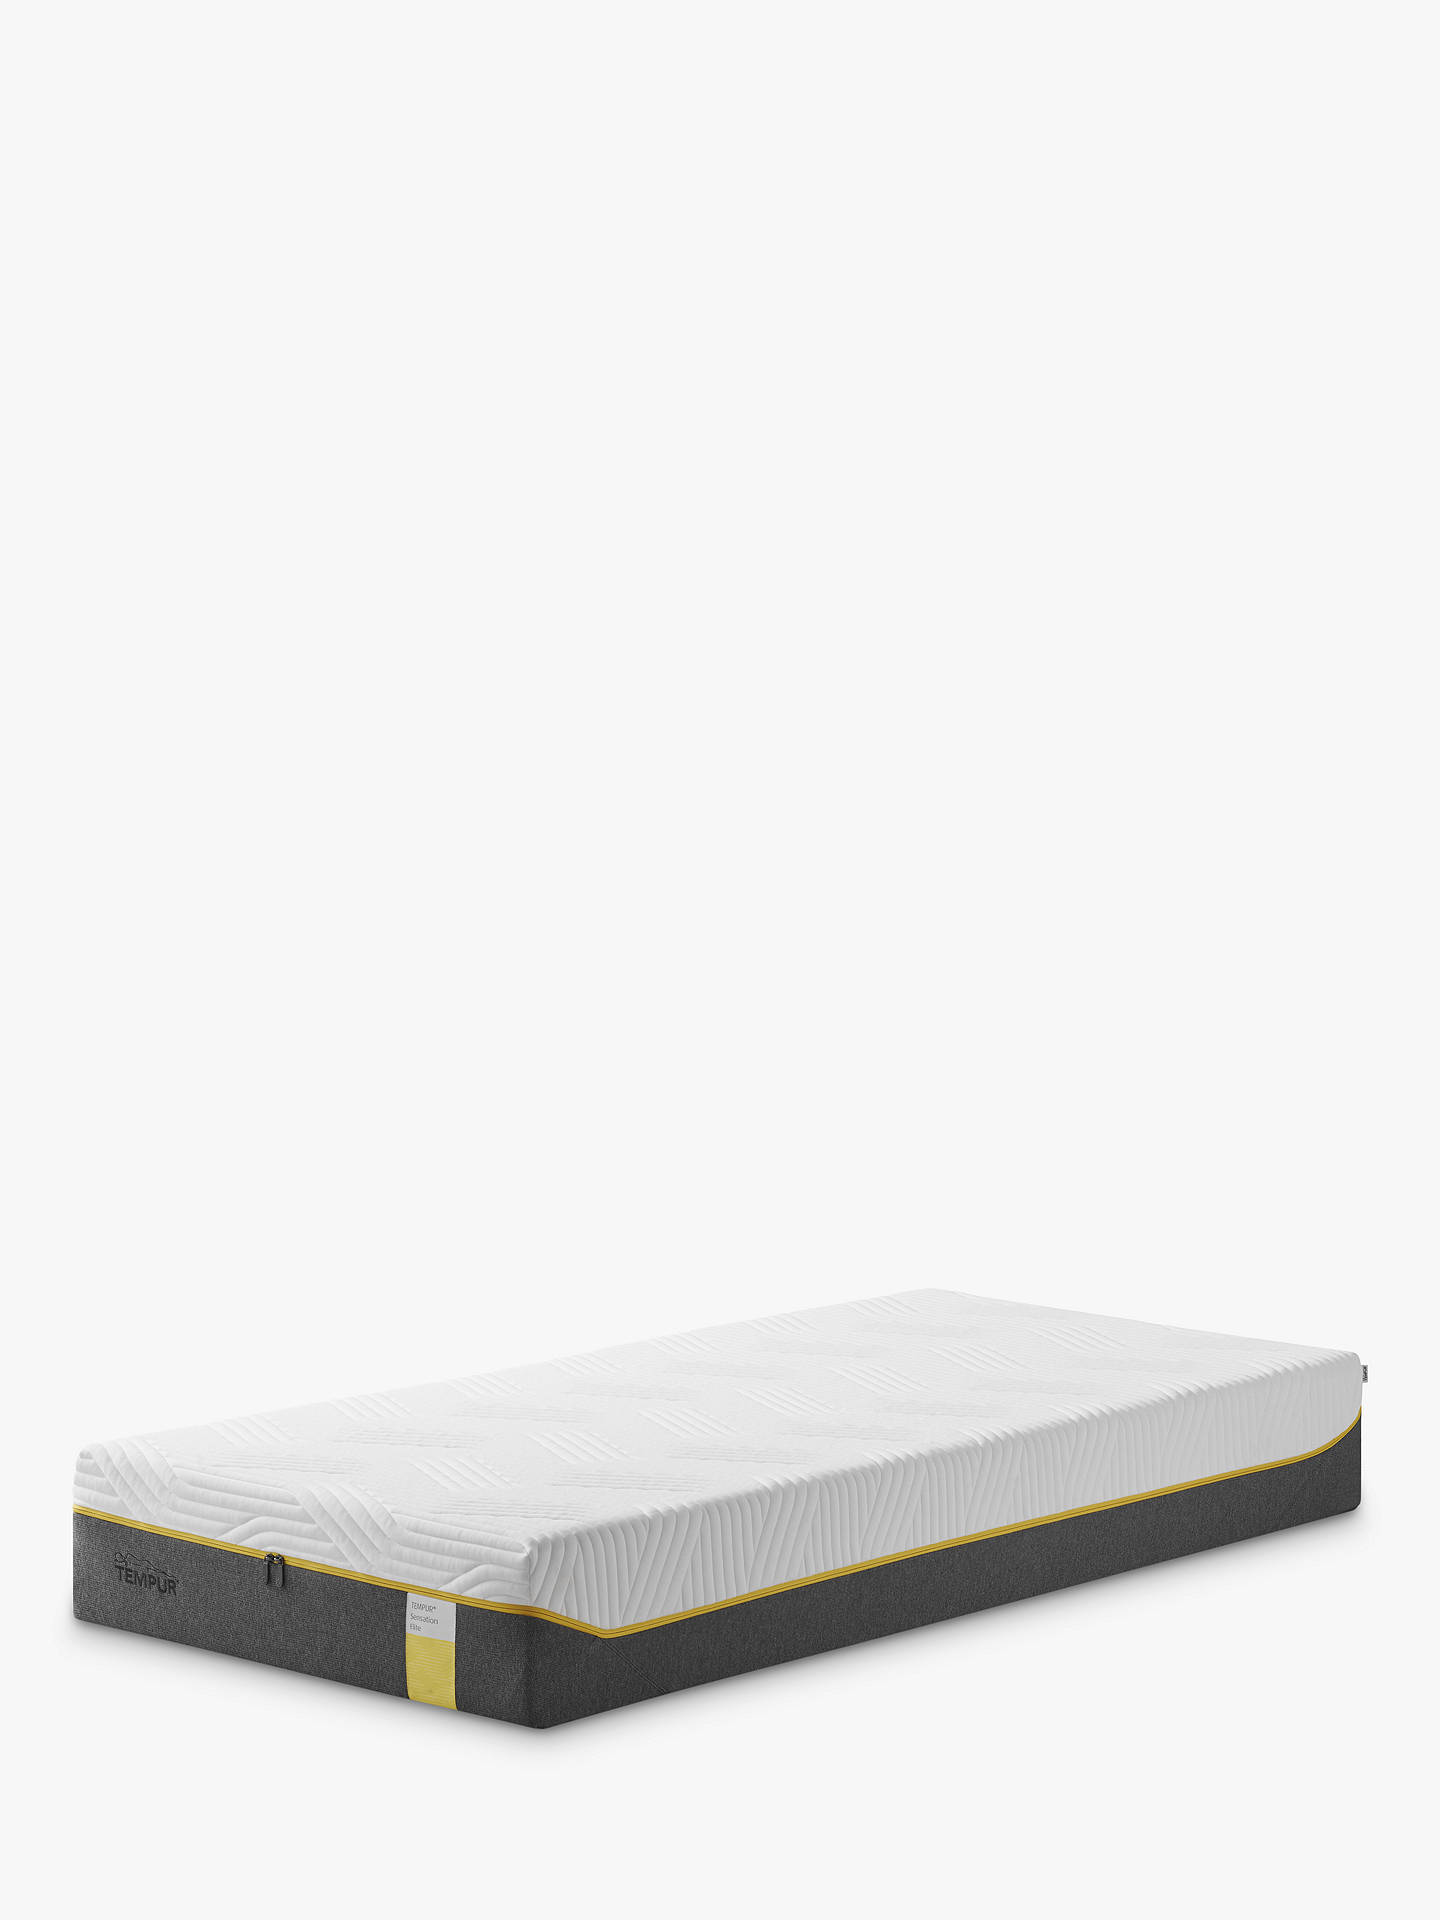 Buy Tempur Sensation Elite 25 Memory Foam Mattress, Firm Tension, Single Online at johnlewis.com